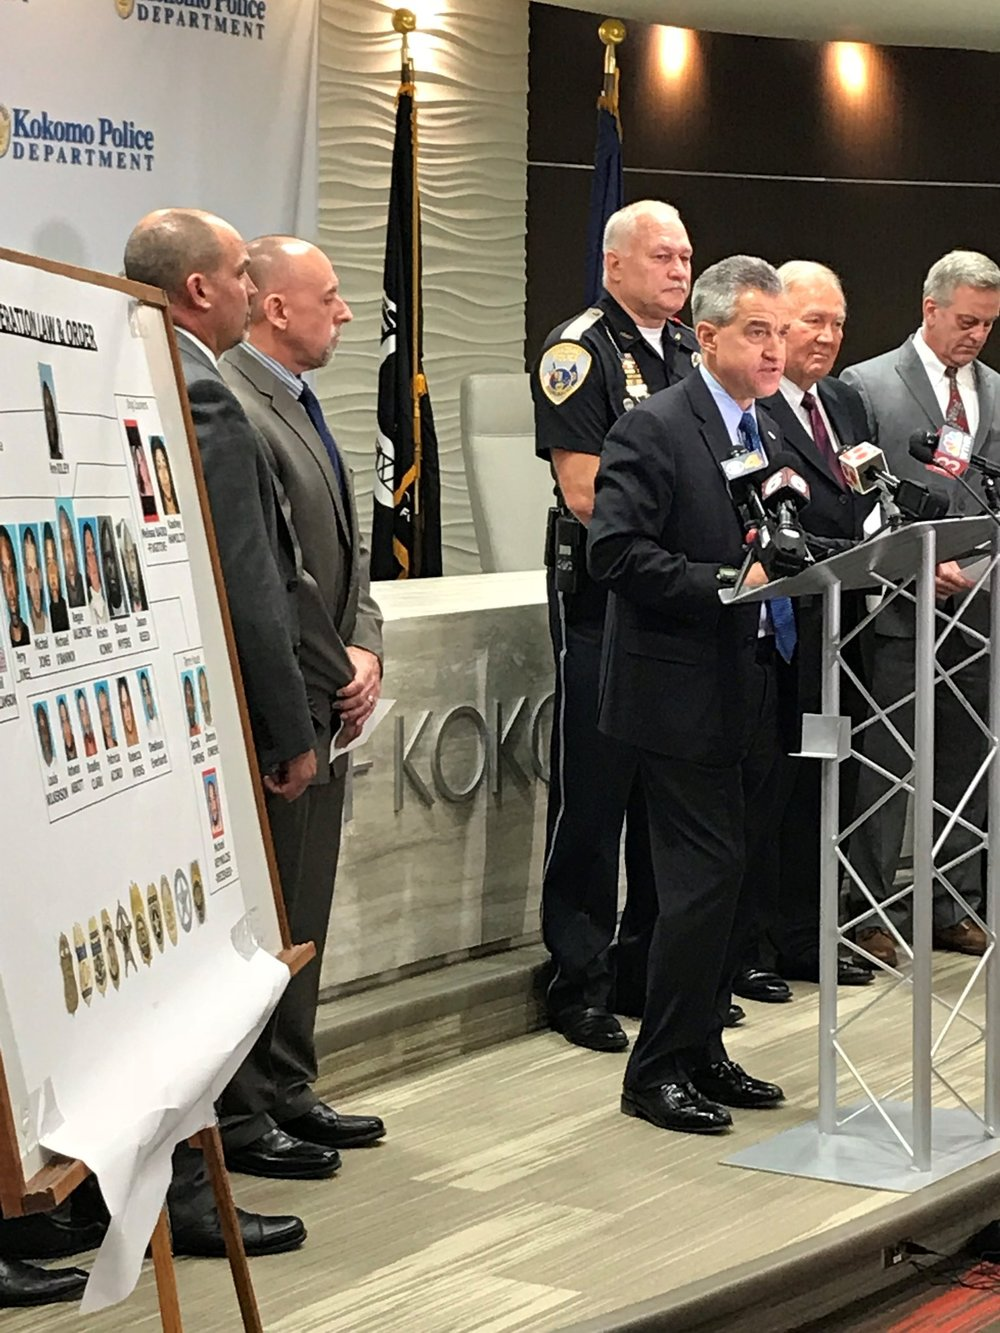 US Attorney Joshua Minkler of the Southern District of Indiana announcing federal charges against a drug trafficking organization accused of bringing large amounts of illegal drugs into Central Indiana. Photo: Southern District of Indiana